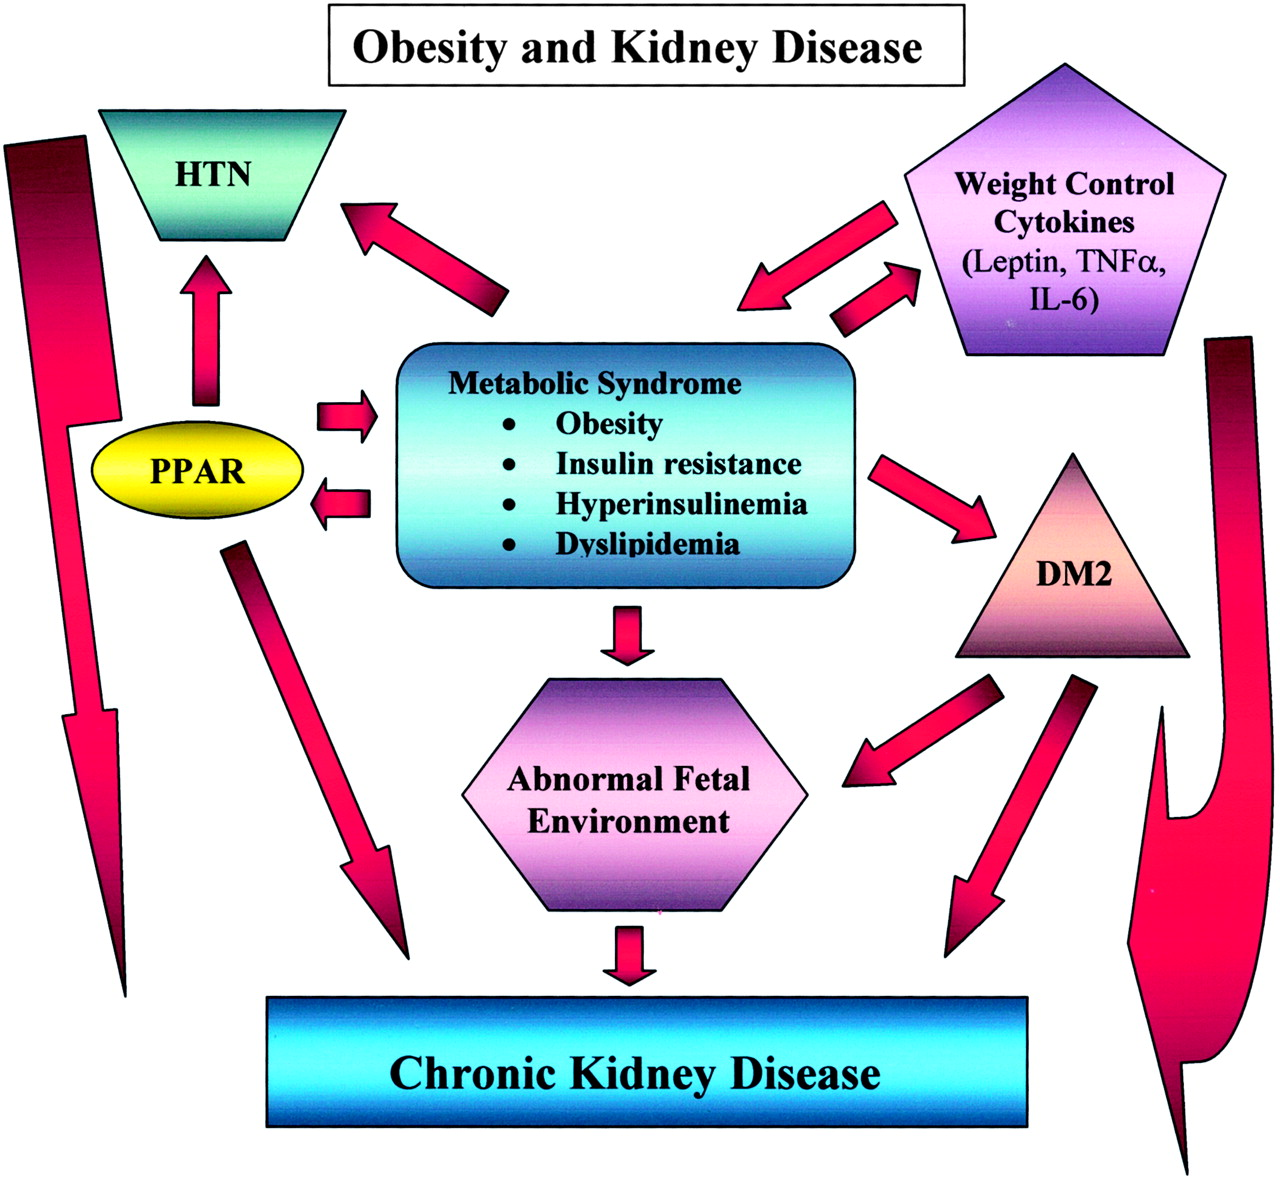 overview obesity what does it have to do with kidney disease american society of nephrology [ 1280 x 1178 Pixel ]